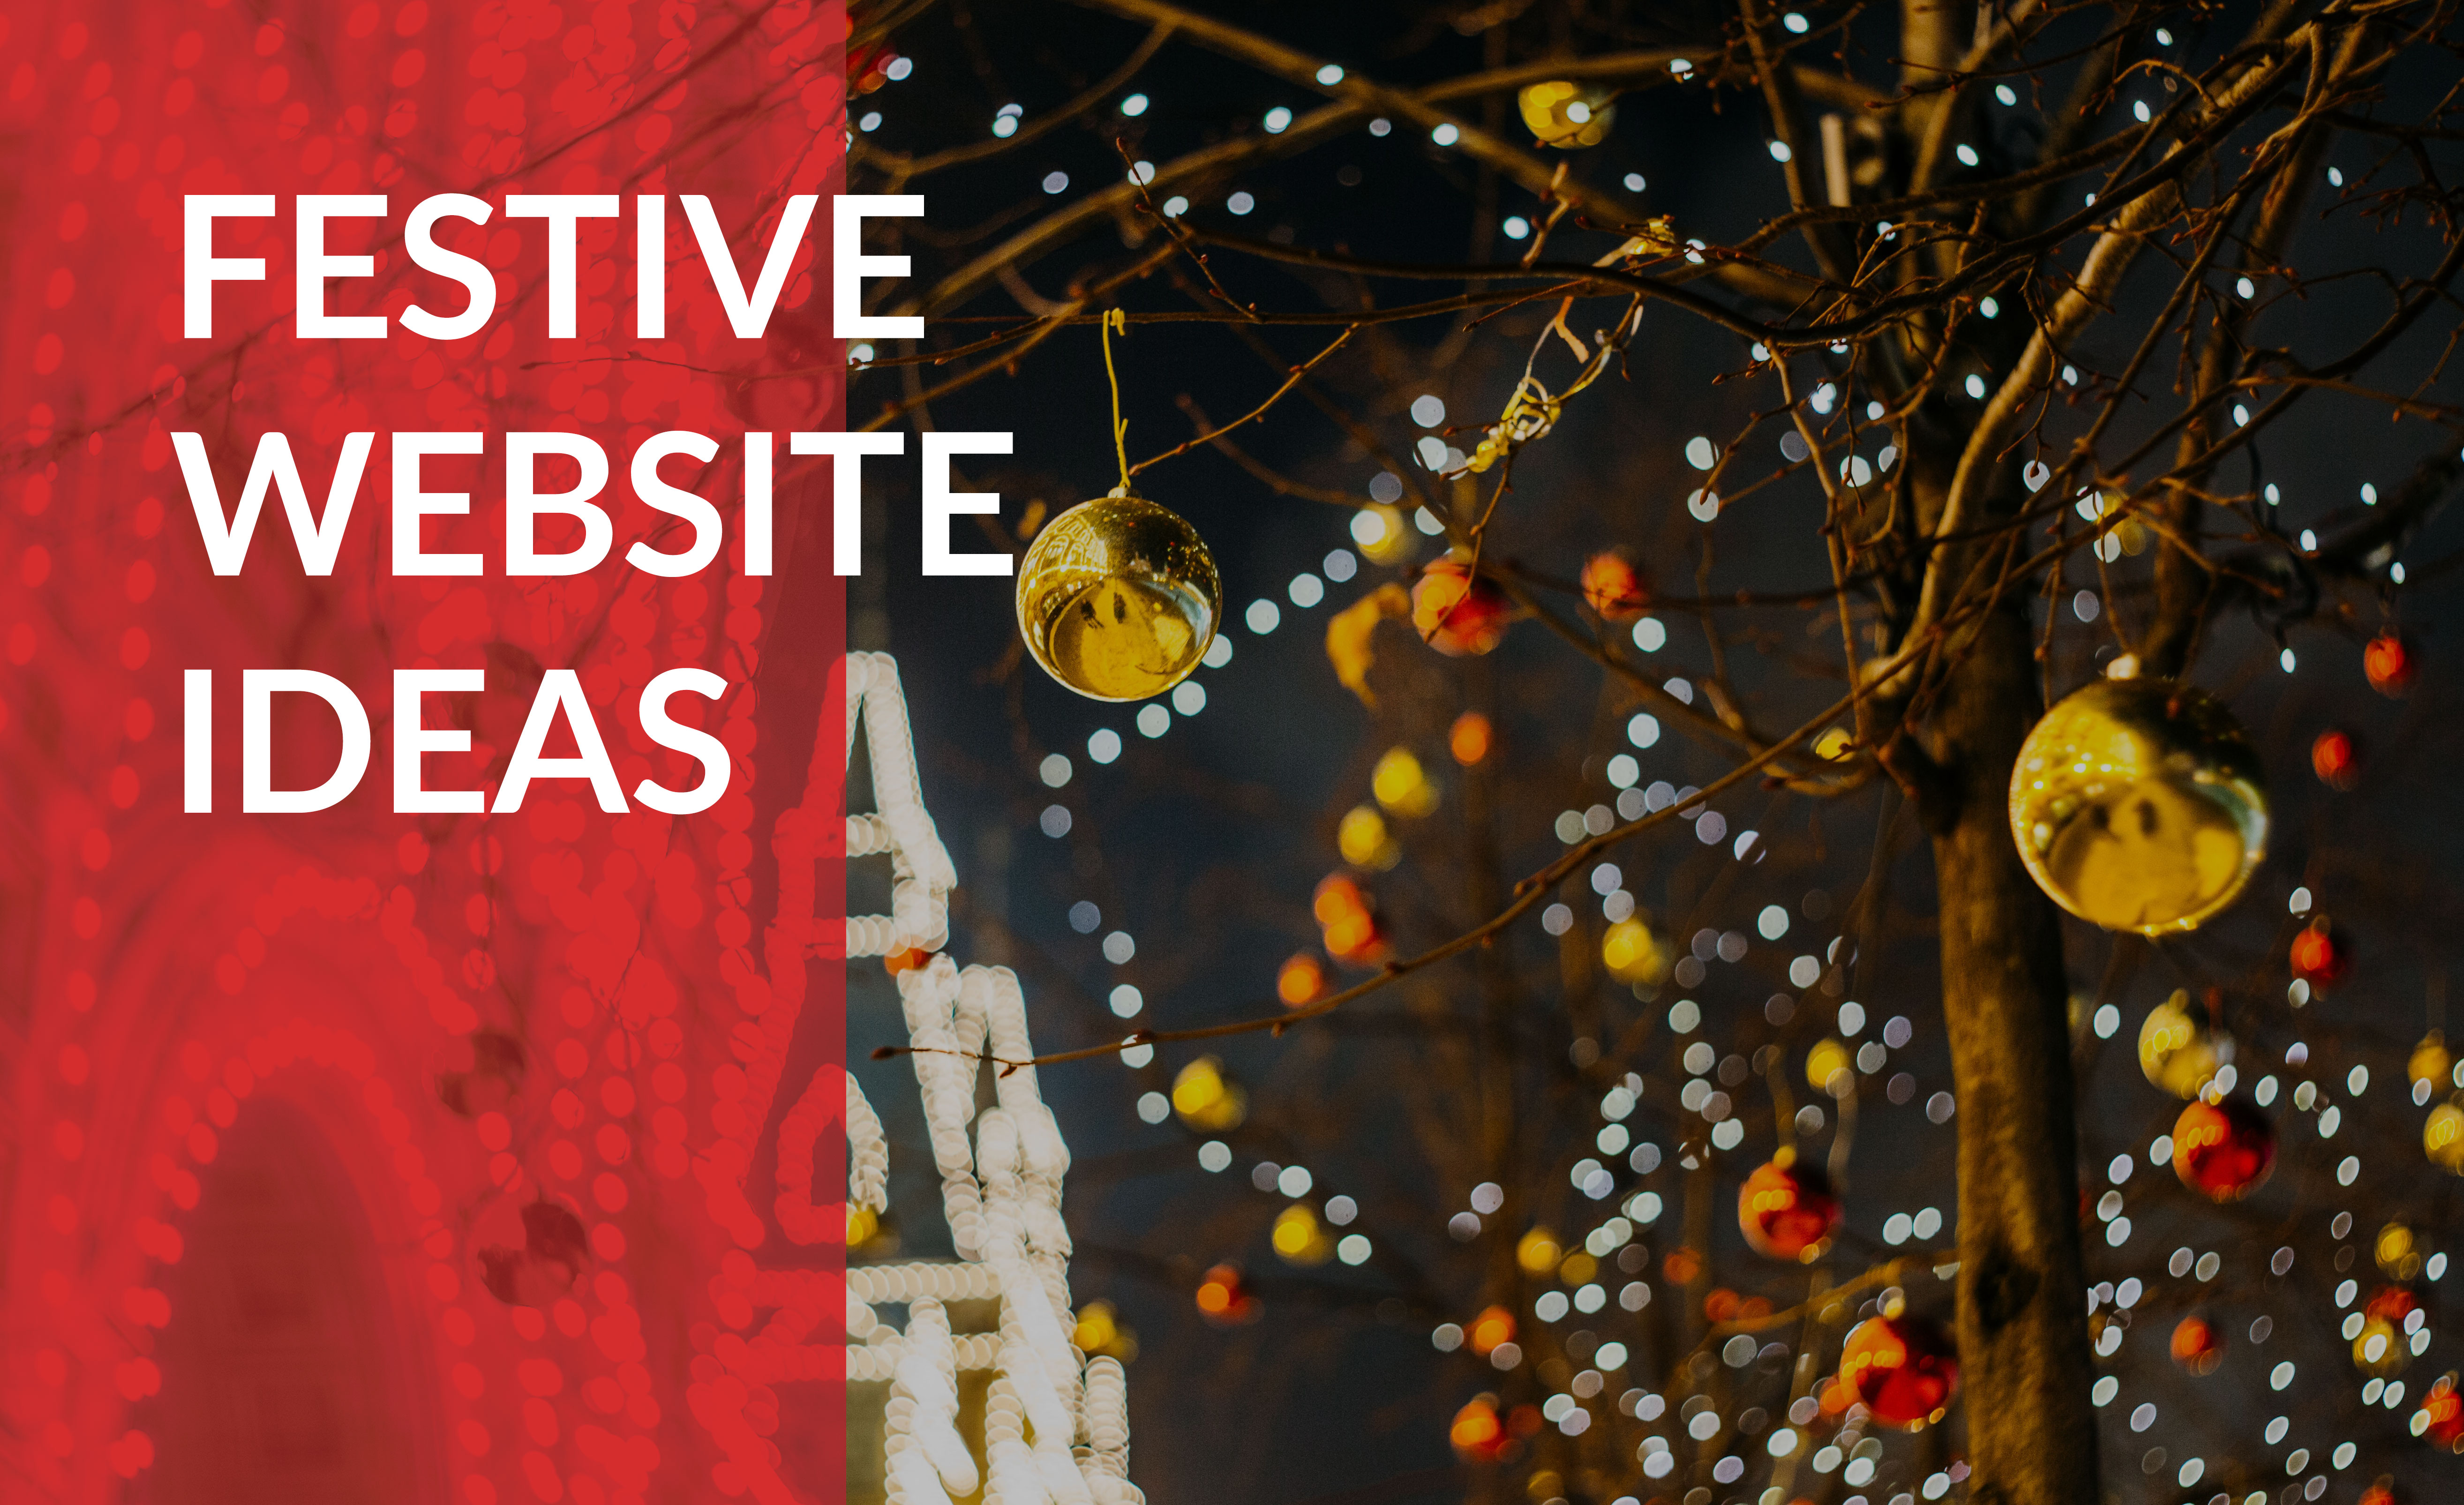 festive website ideas